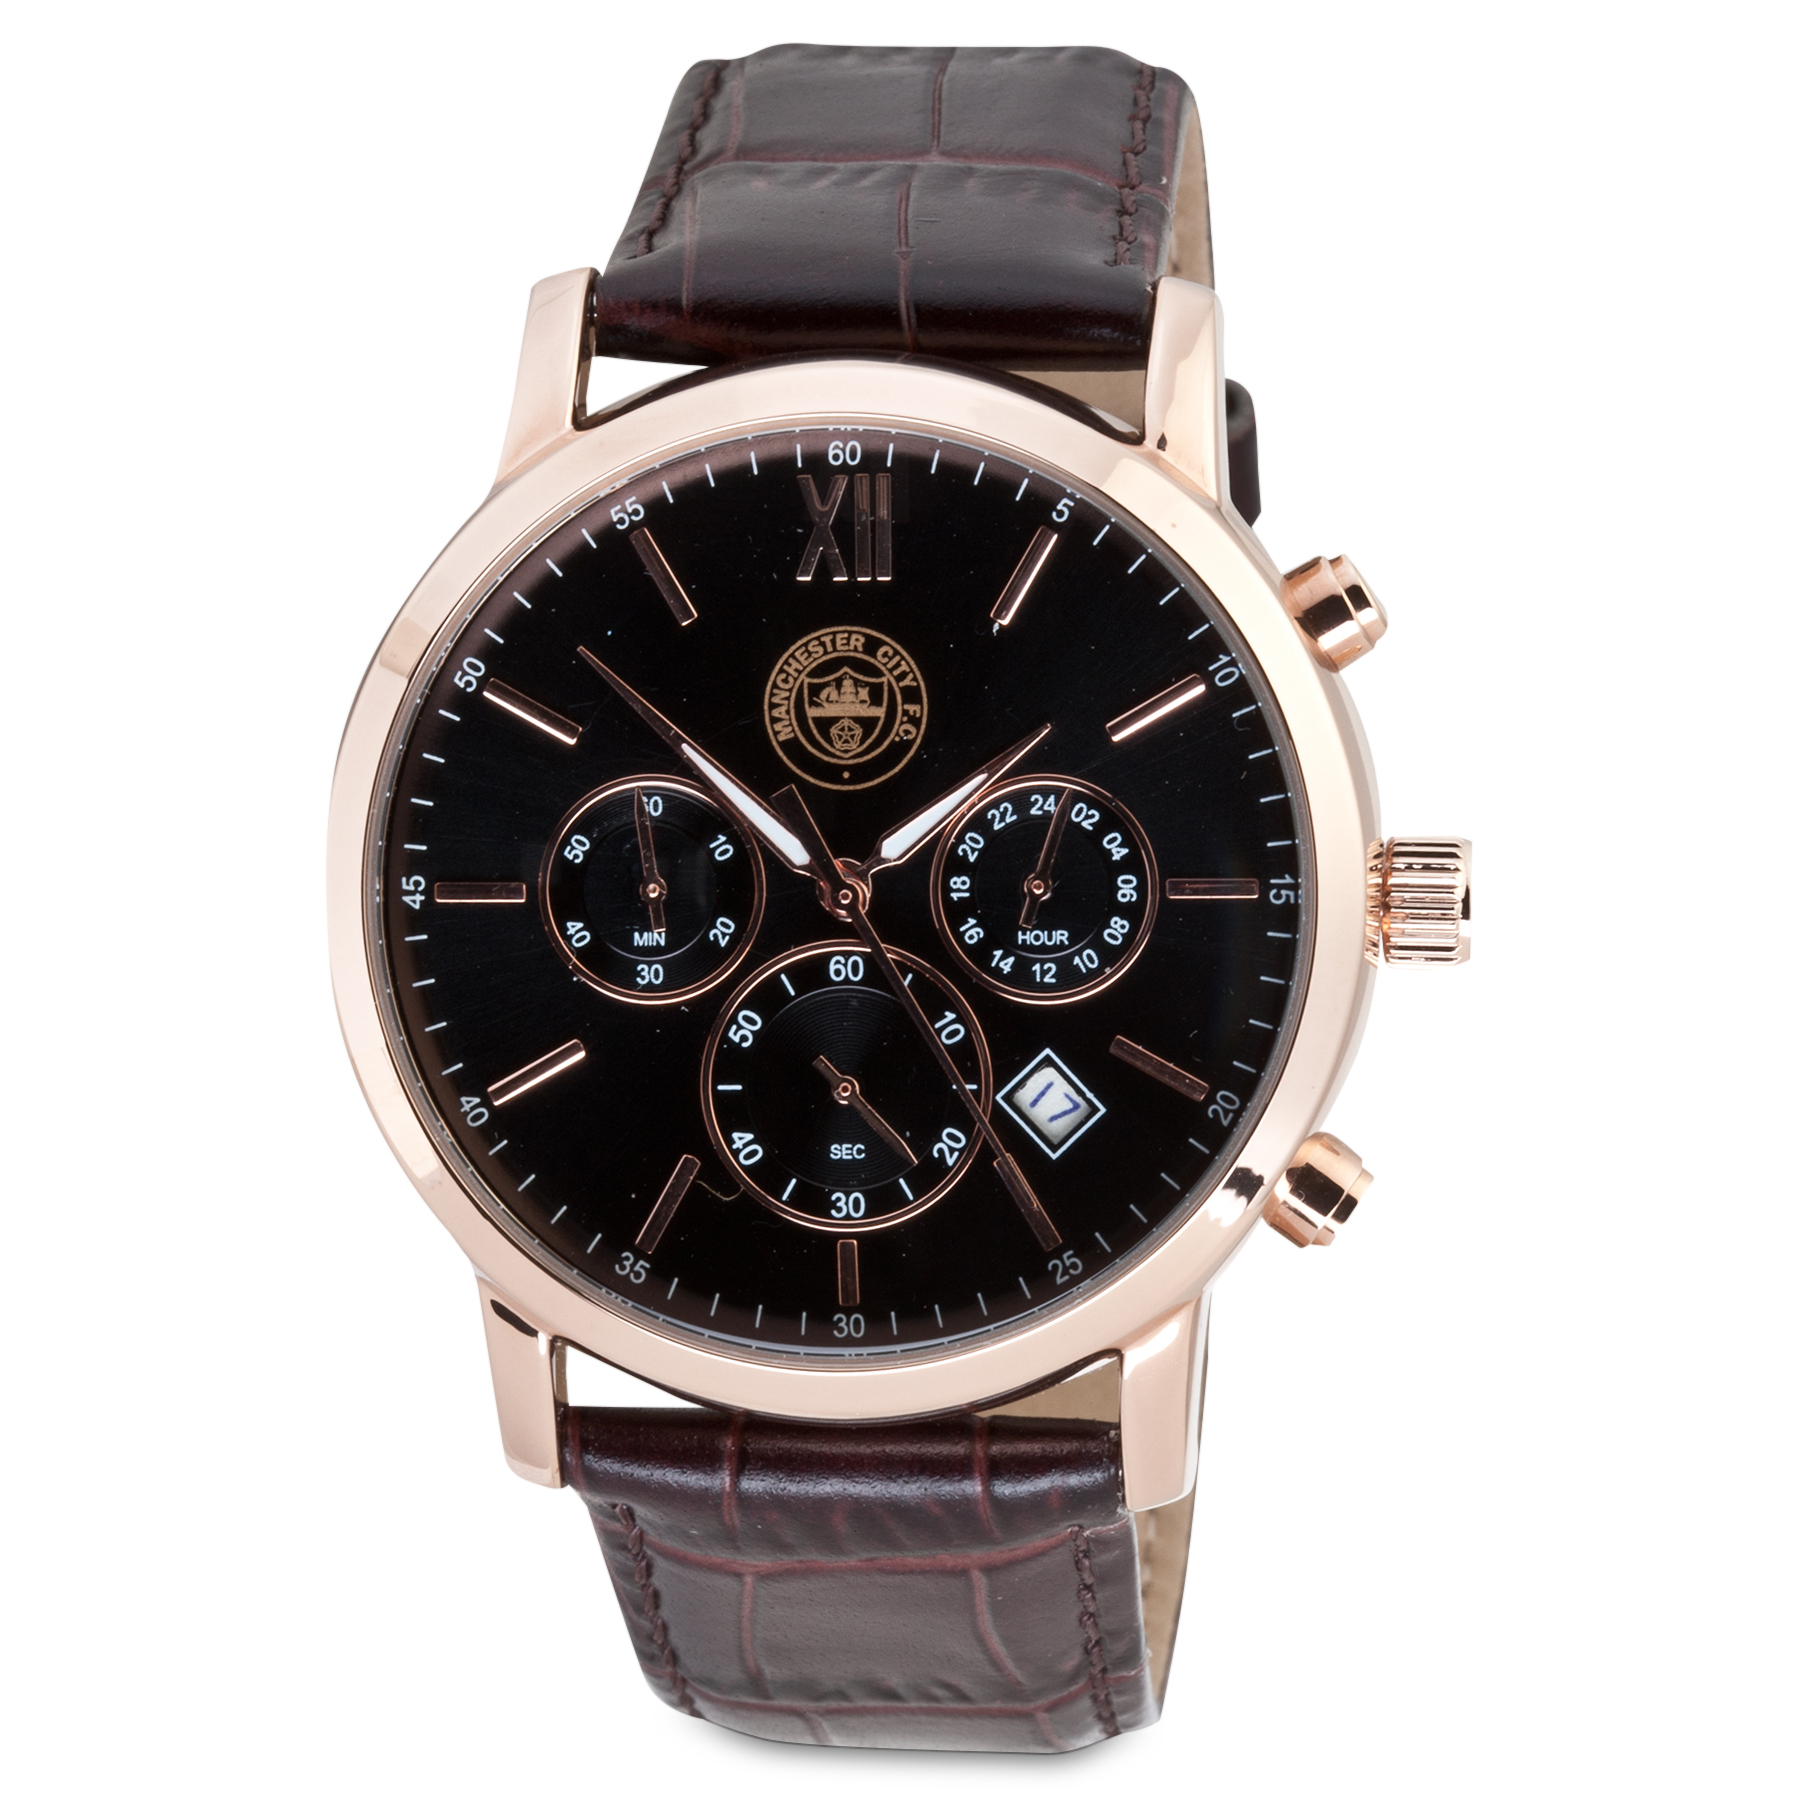 Manchester City Sekonda Limited Edition Watch